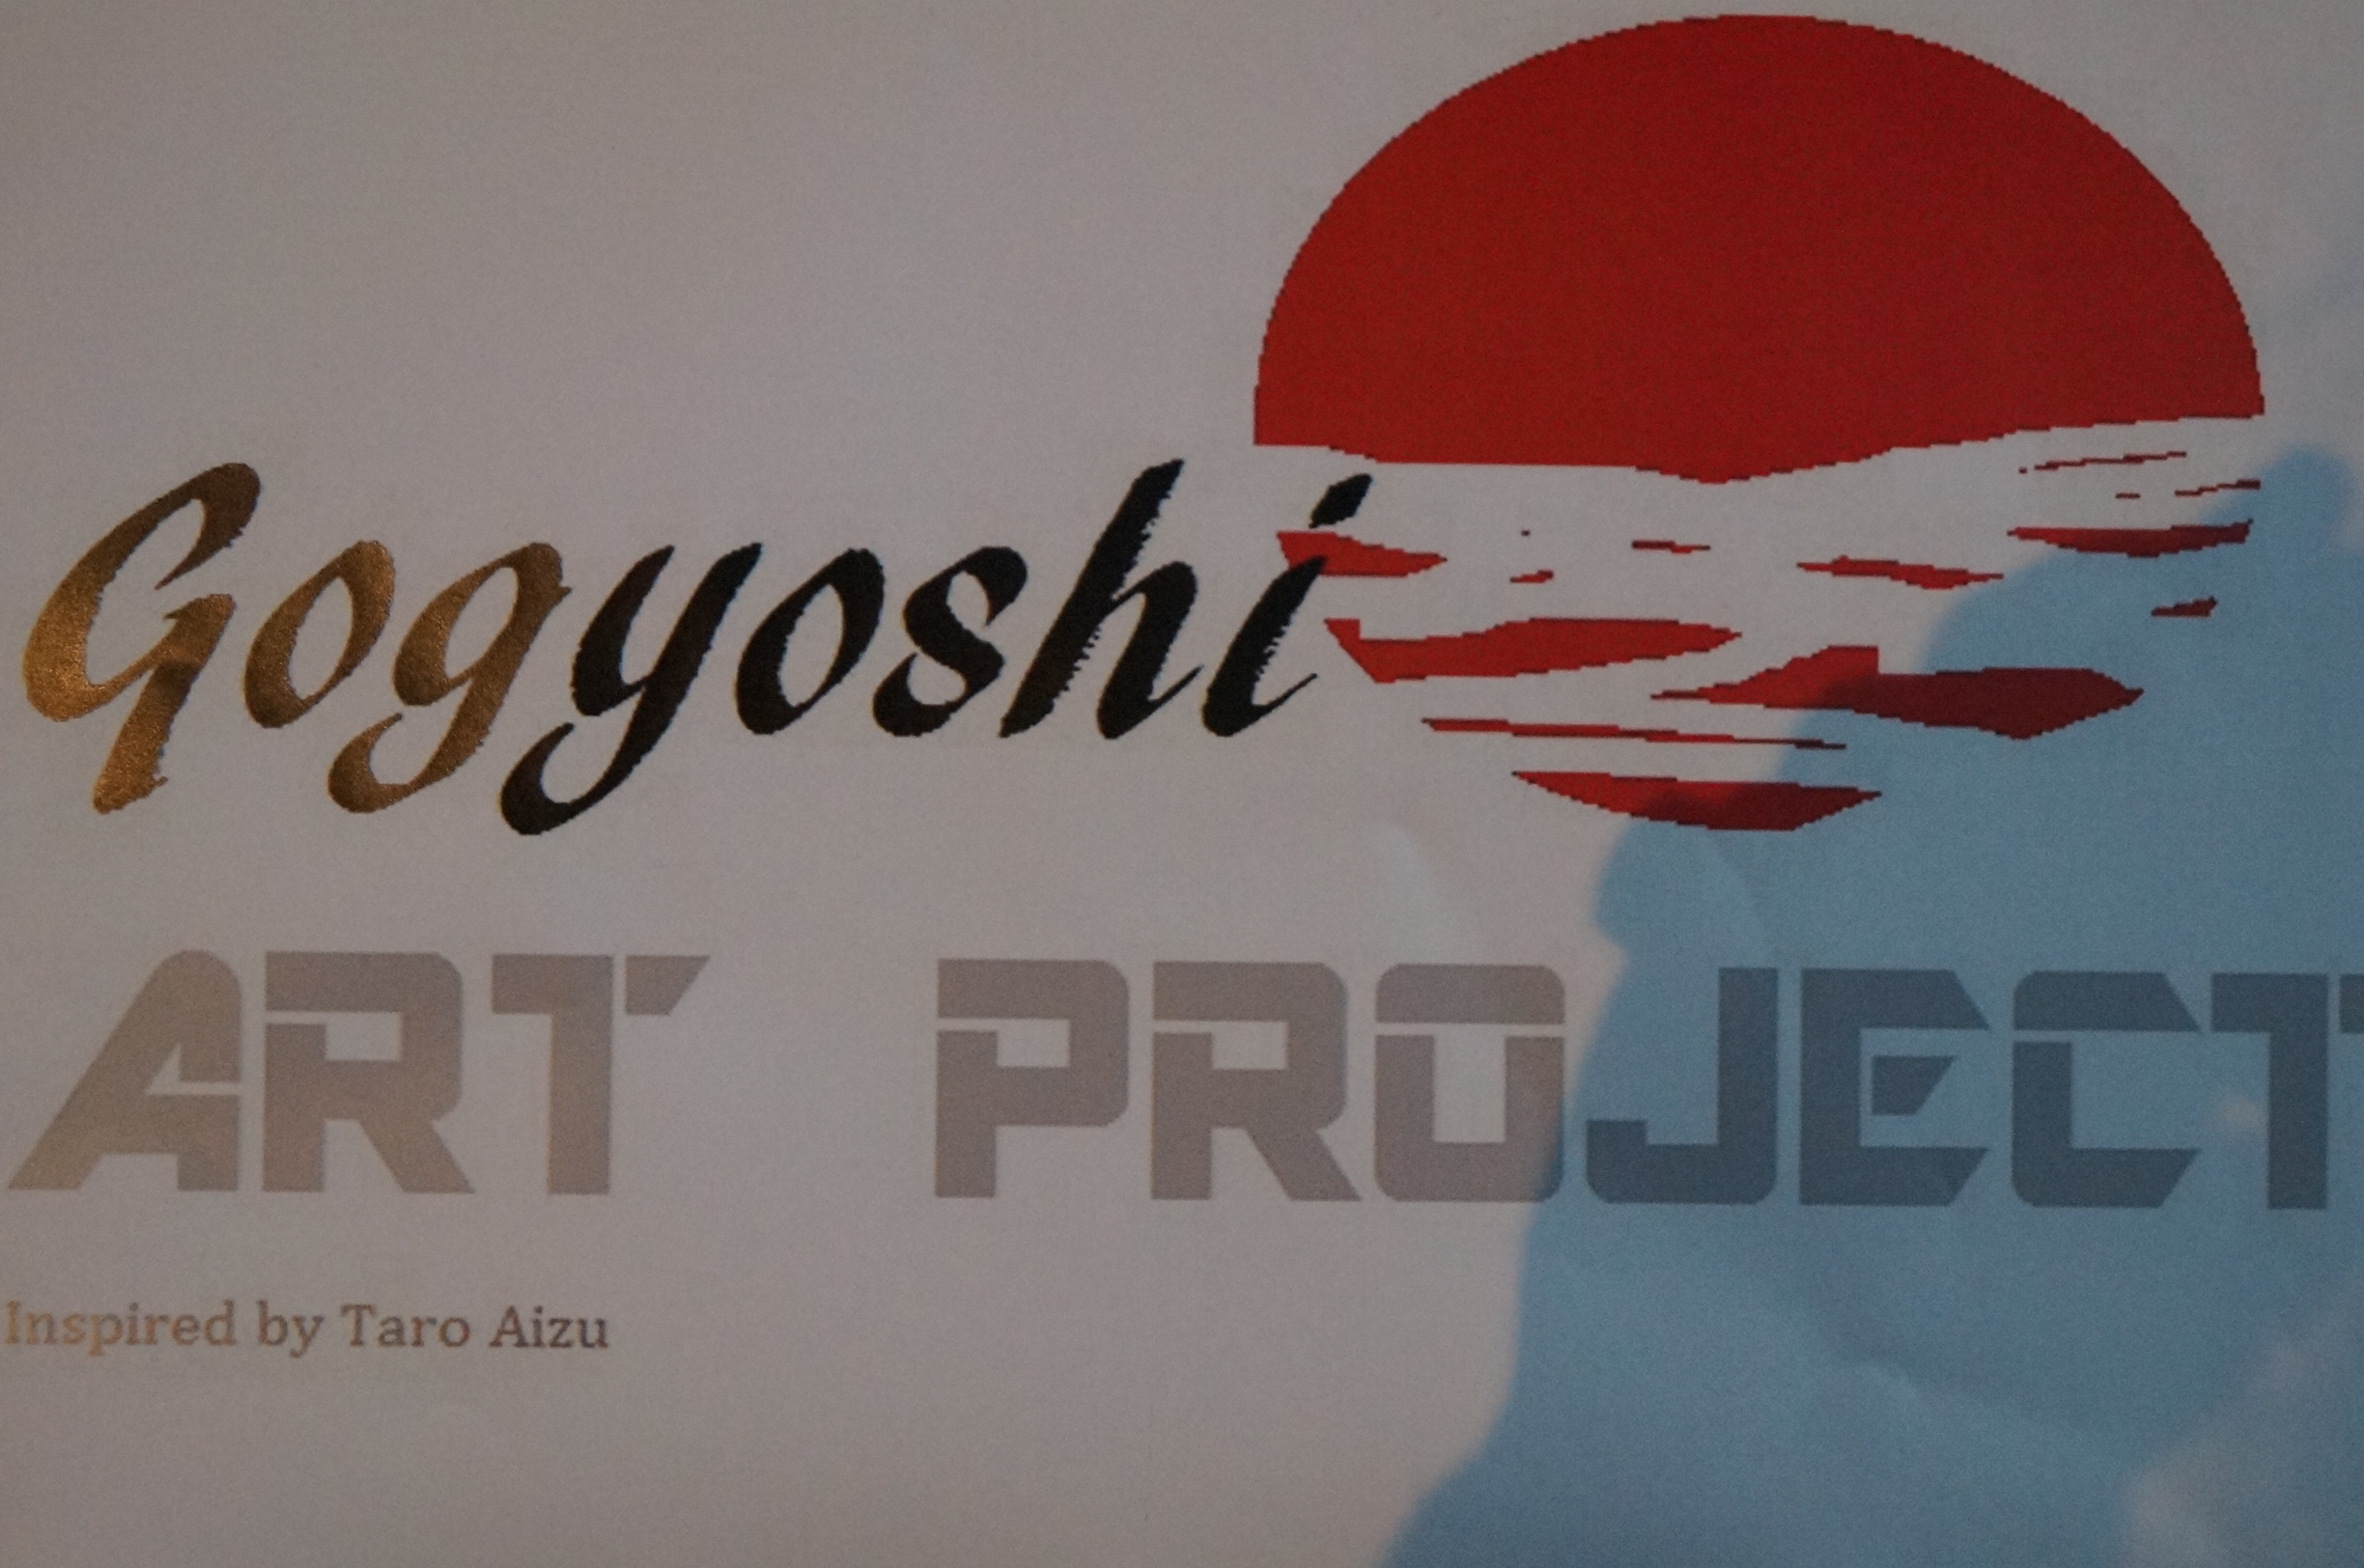 Gogyoshi Art Project